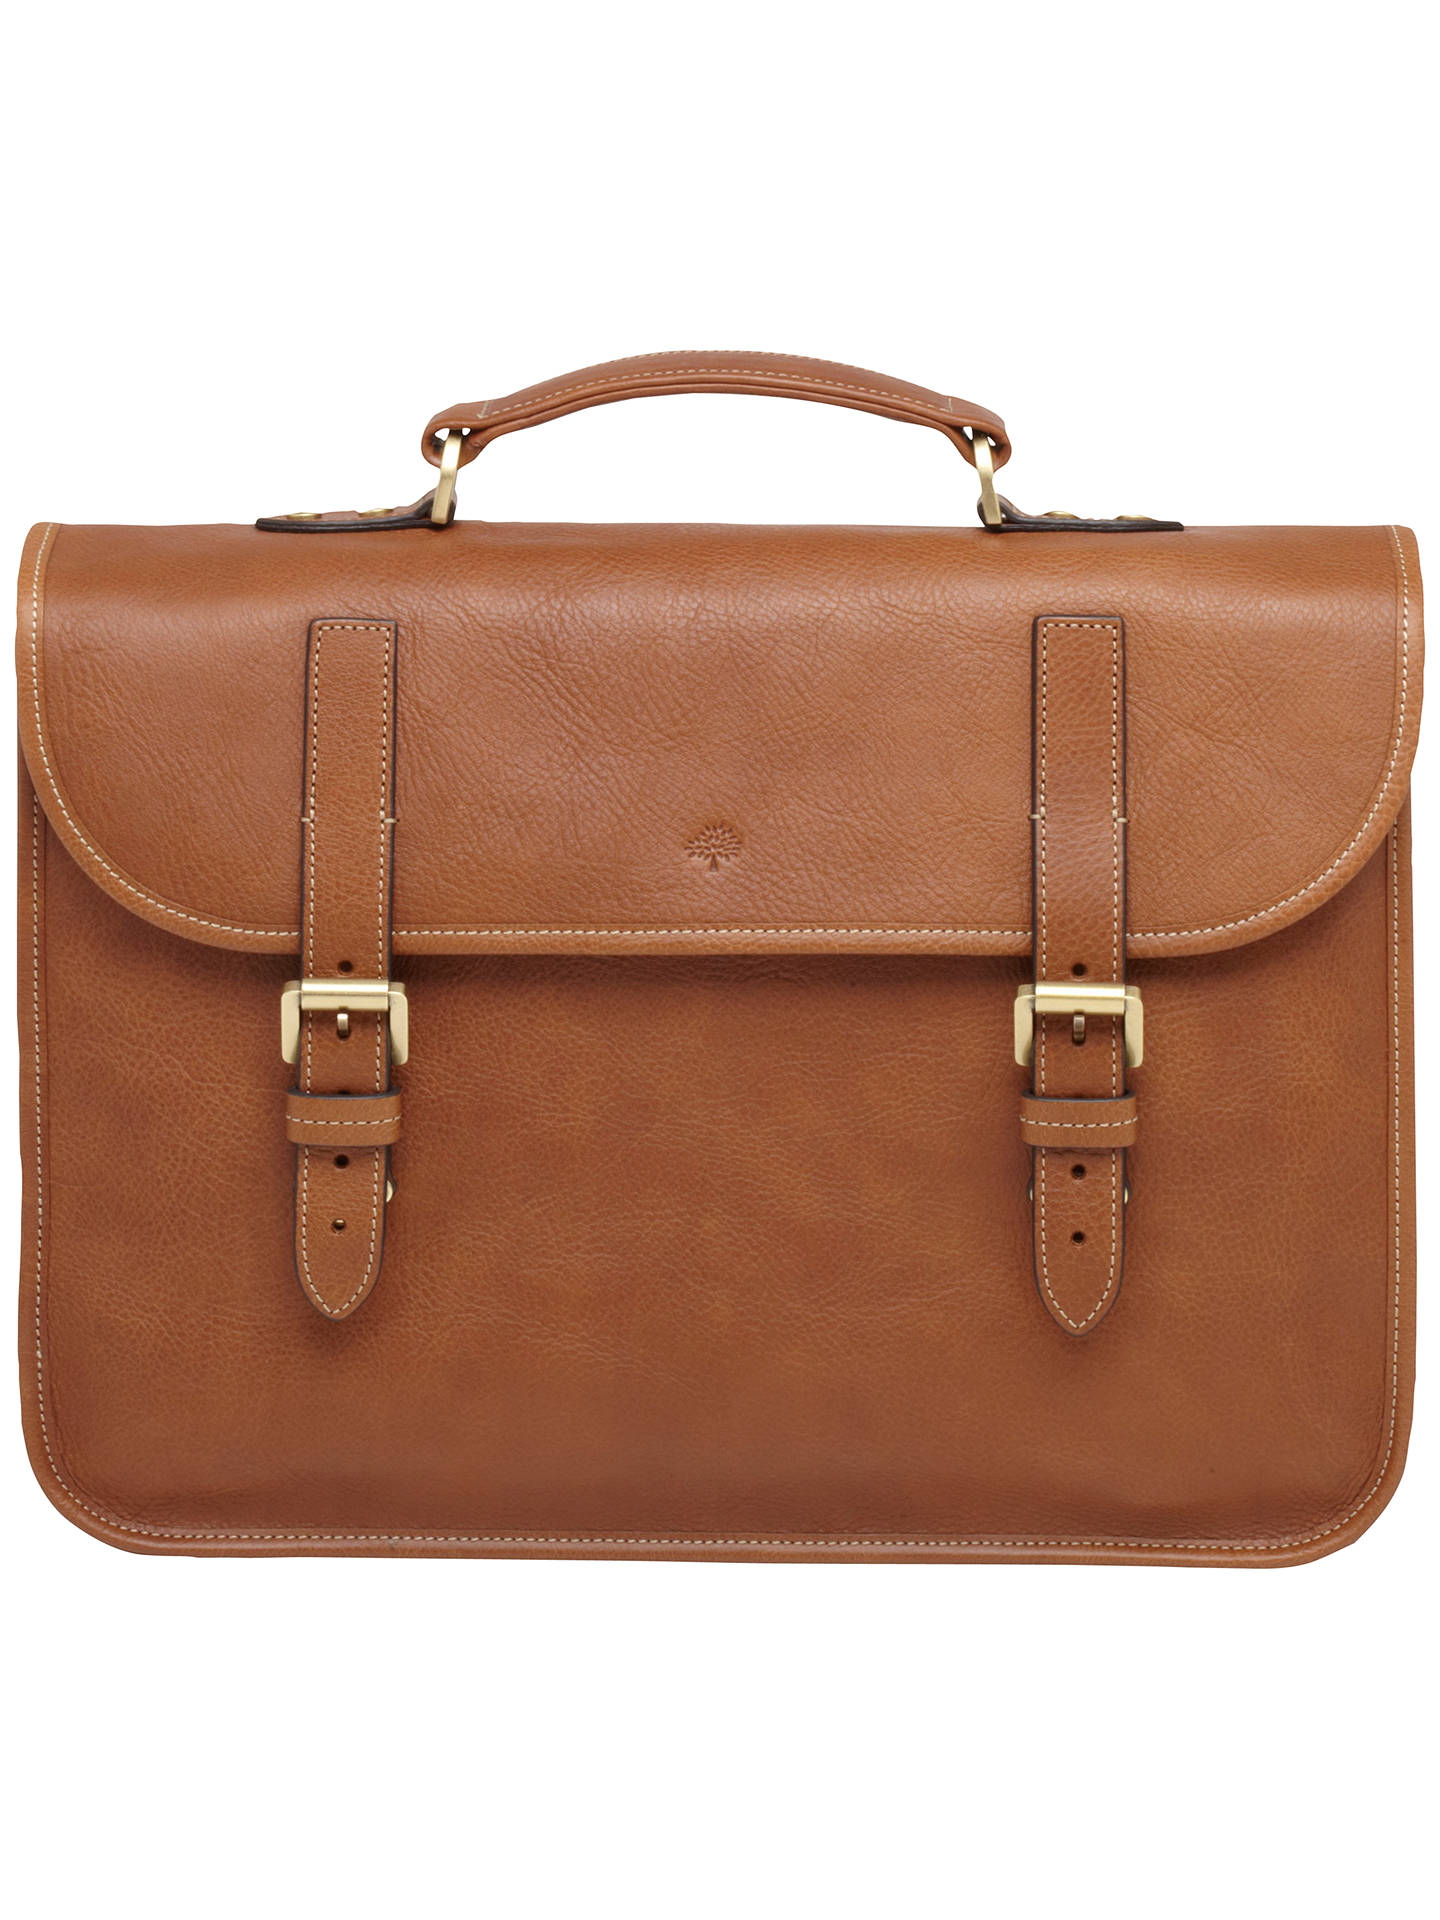 00799bda76 View All Men's Bags. Buy Mulberry Elkington Natural Leather Briefcase, Oak  Online at johnlewis.com